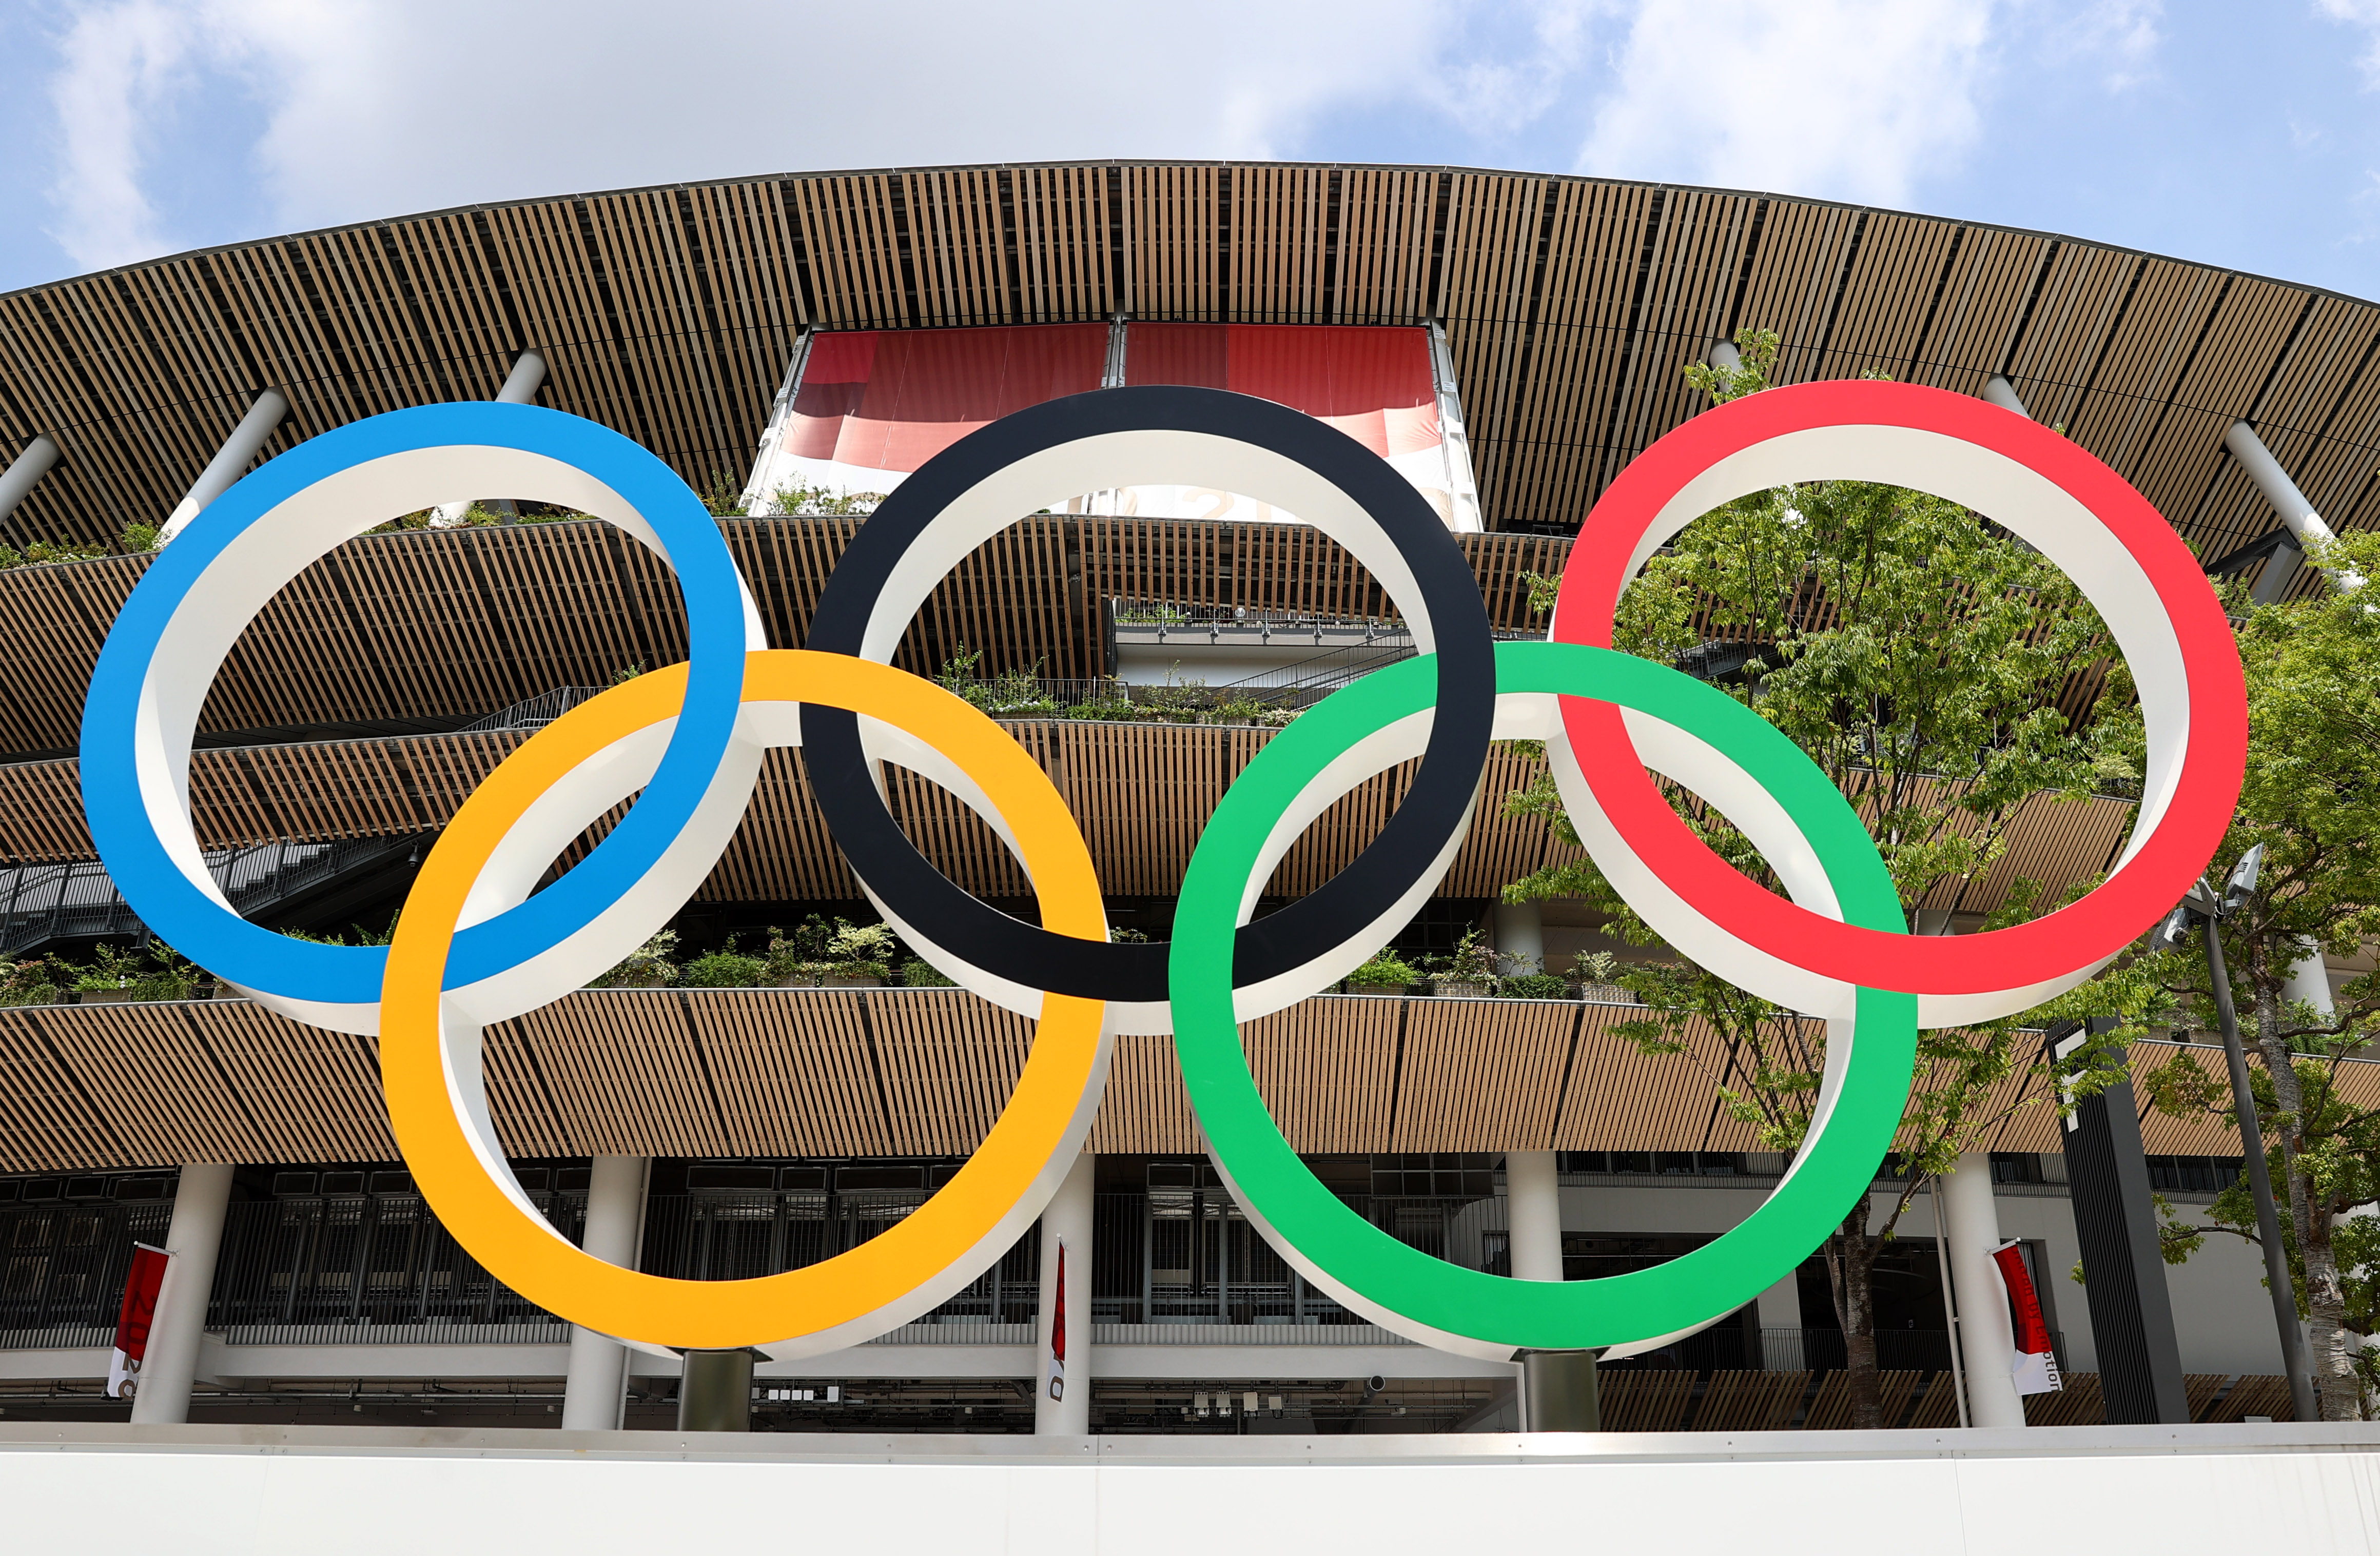 Tokyo 2020 Olympics Preview - Tokyo, Japan - July 20, 2021 General view of the Olympic Rings outside The National Stadium, the main venue of the Tokyo 2020 Olympic Games REUTERS/Kim Kyung-Hoon